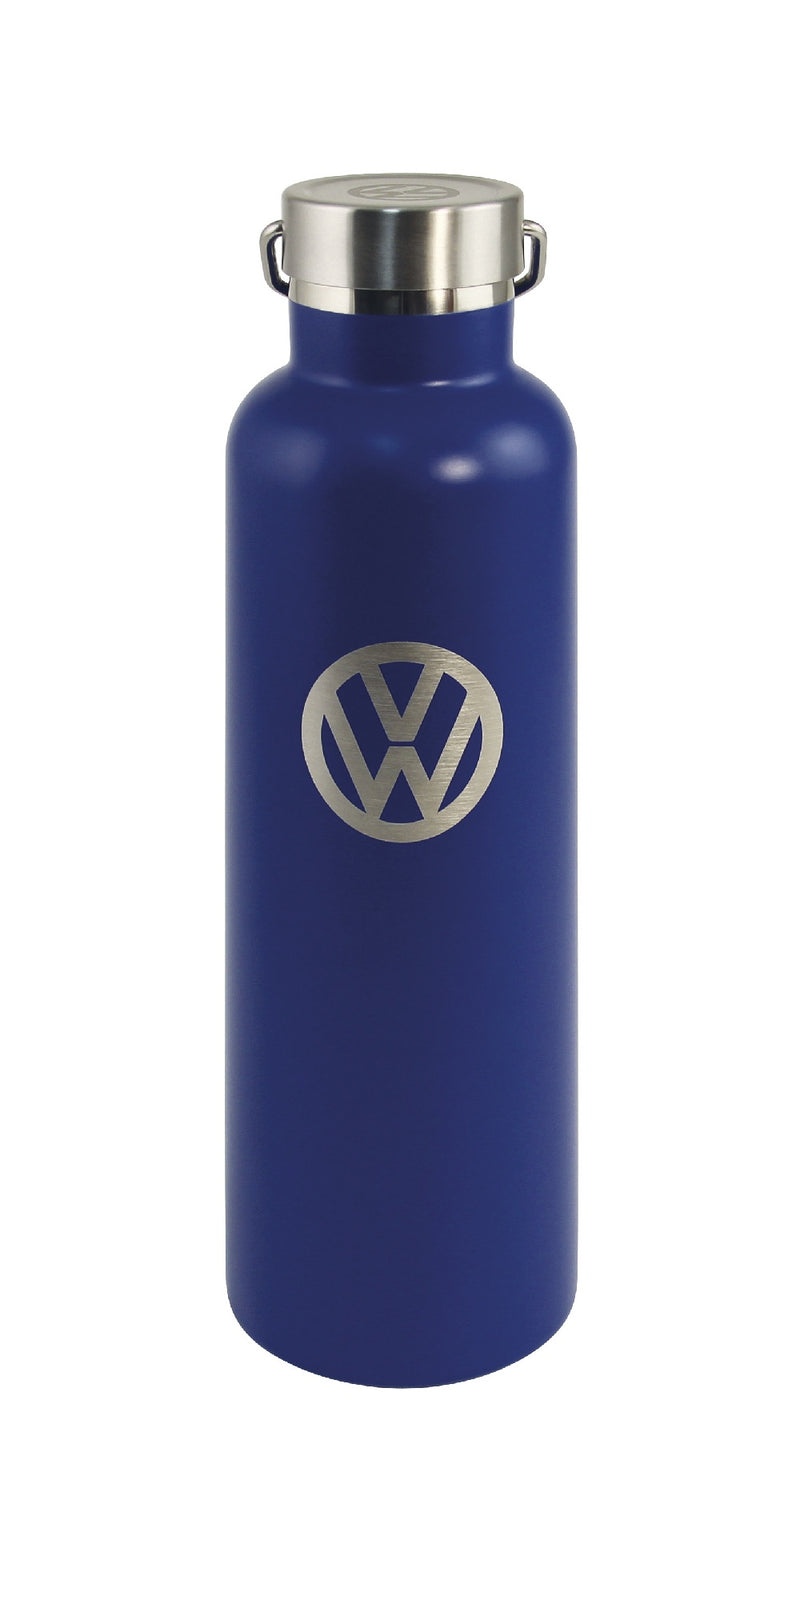 VW Stainless Thermos Drinking Bottle, Vacuum Insulated, Hot/Cold, 735ml – Blue